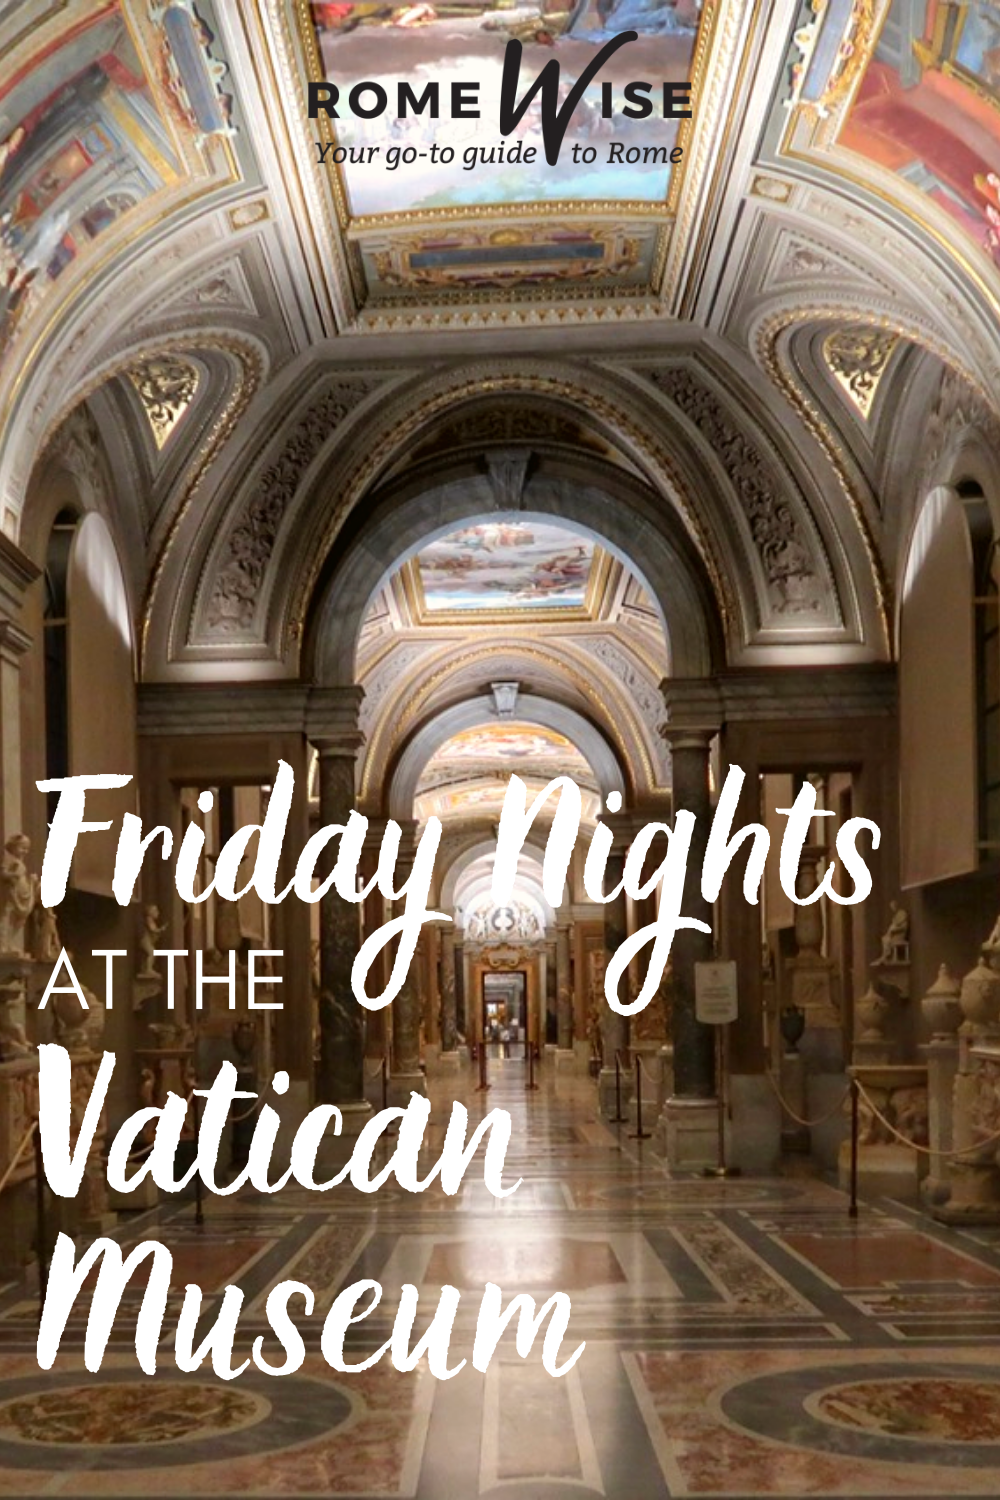 Did you know you can visit the Vatican Museums Friday night? This may be one of the best-kept secrets in Rome. Find you why you should put this special visit on your itinerary.